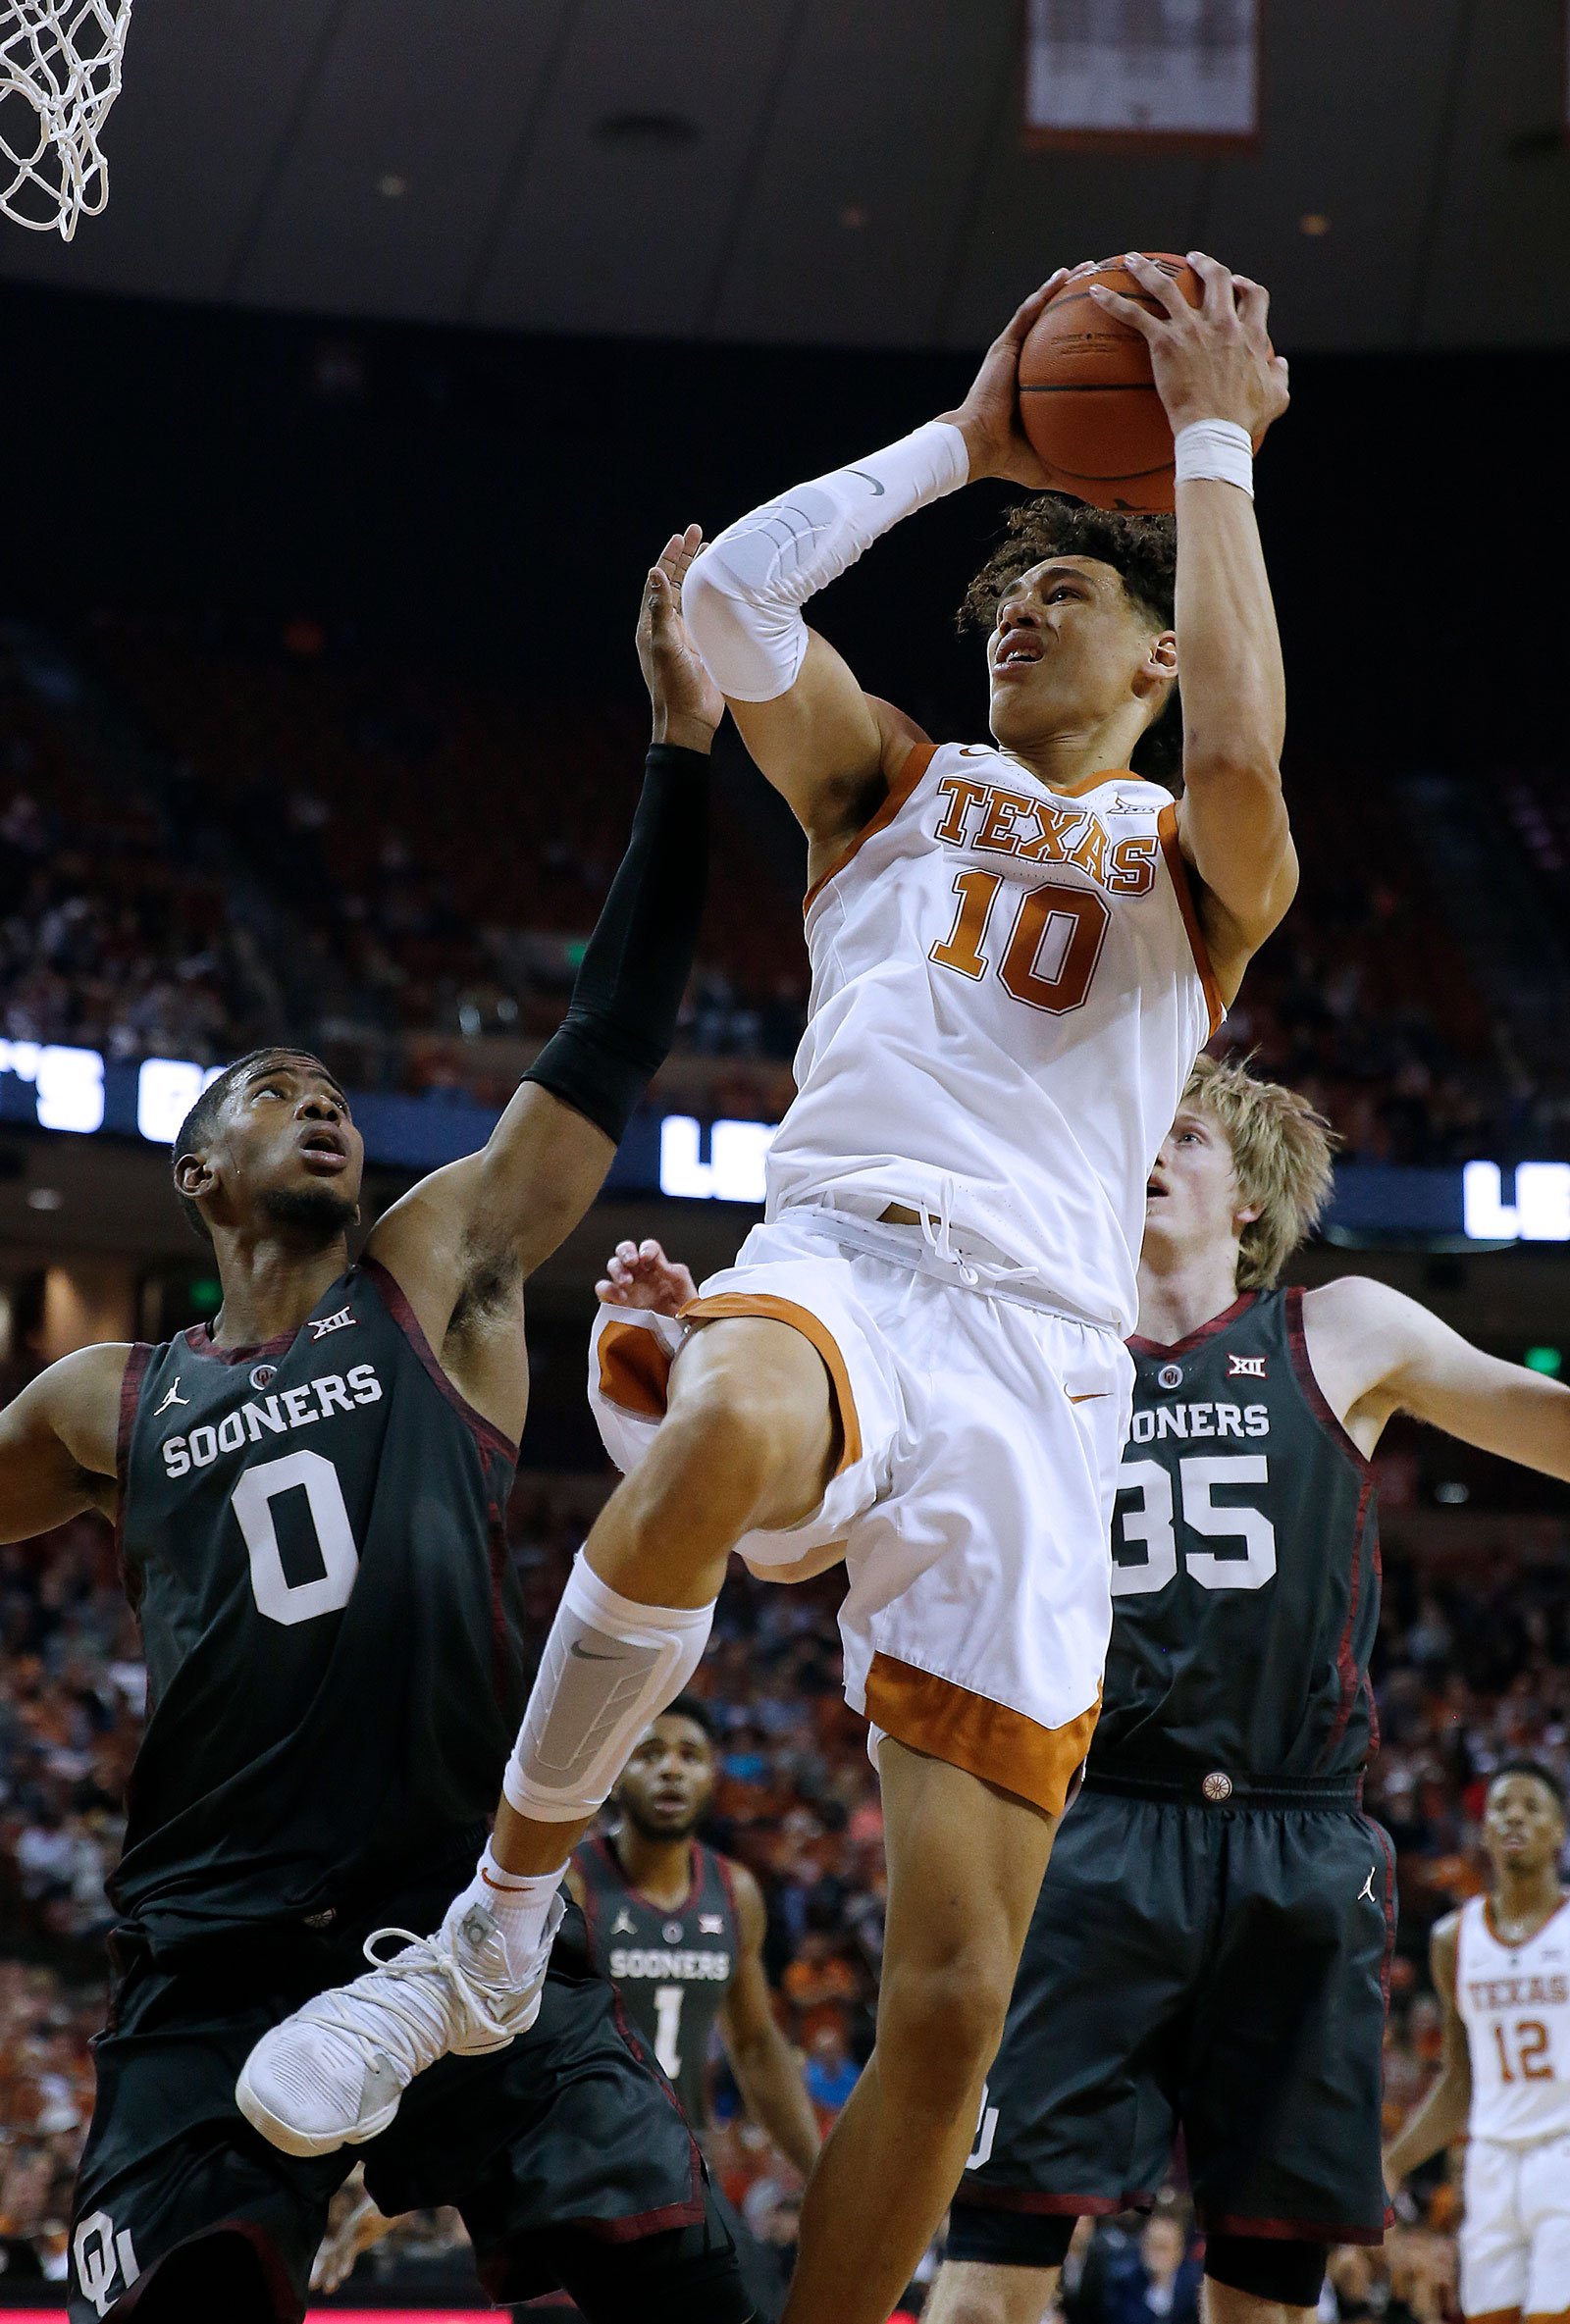 Jaxson Hayes #10 of the Texas Longhorns shoots over Christian James #0 and Brady Manek #35 of the Oklahoma Sooners during second half action at The Frank Erwin Center on January 19, 2019 in Austin, Texas.